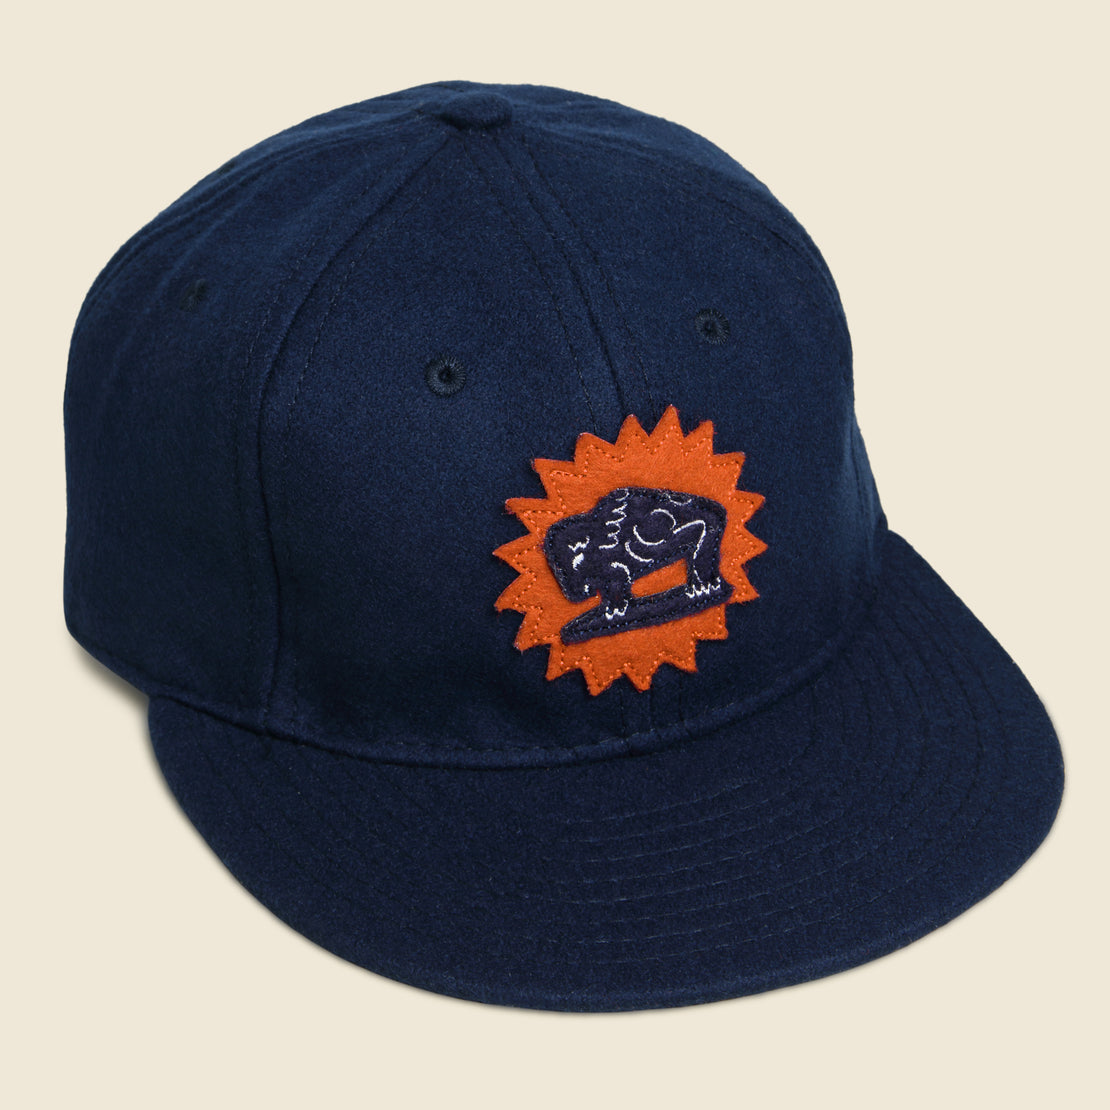 Ebbets Field Flannels Houston Buffaloes Hat - Navy/Orange